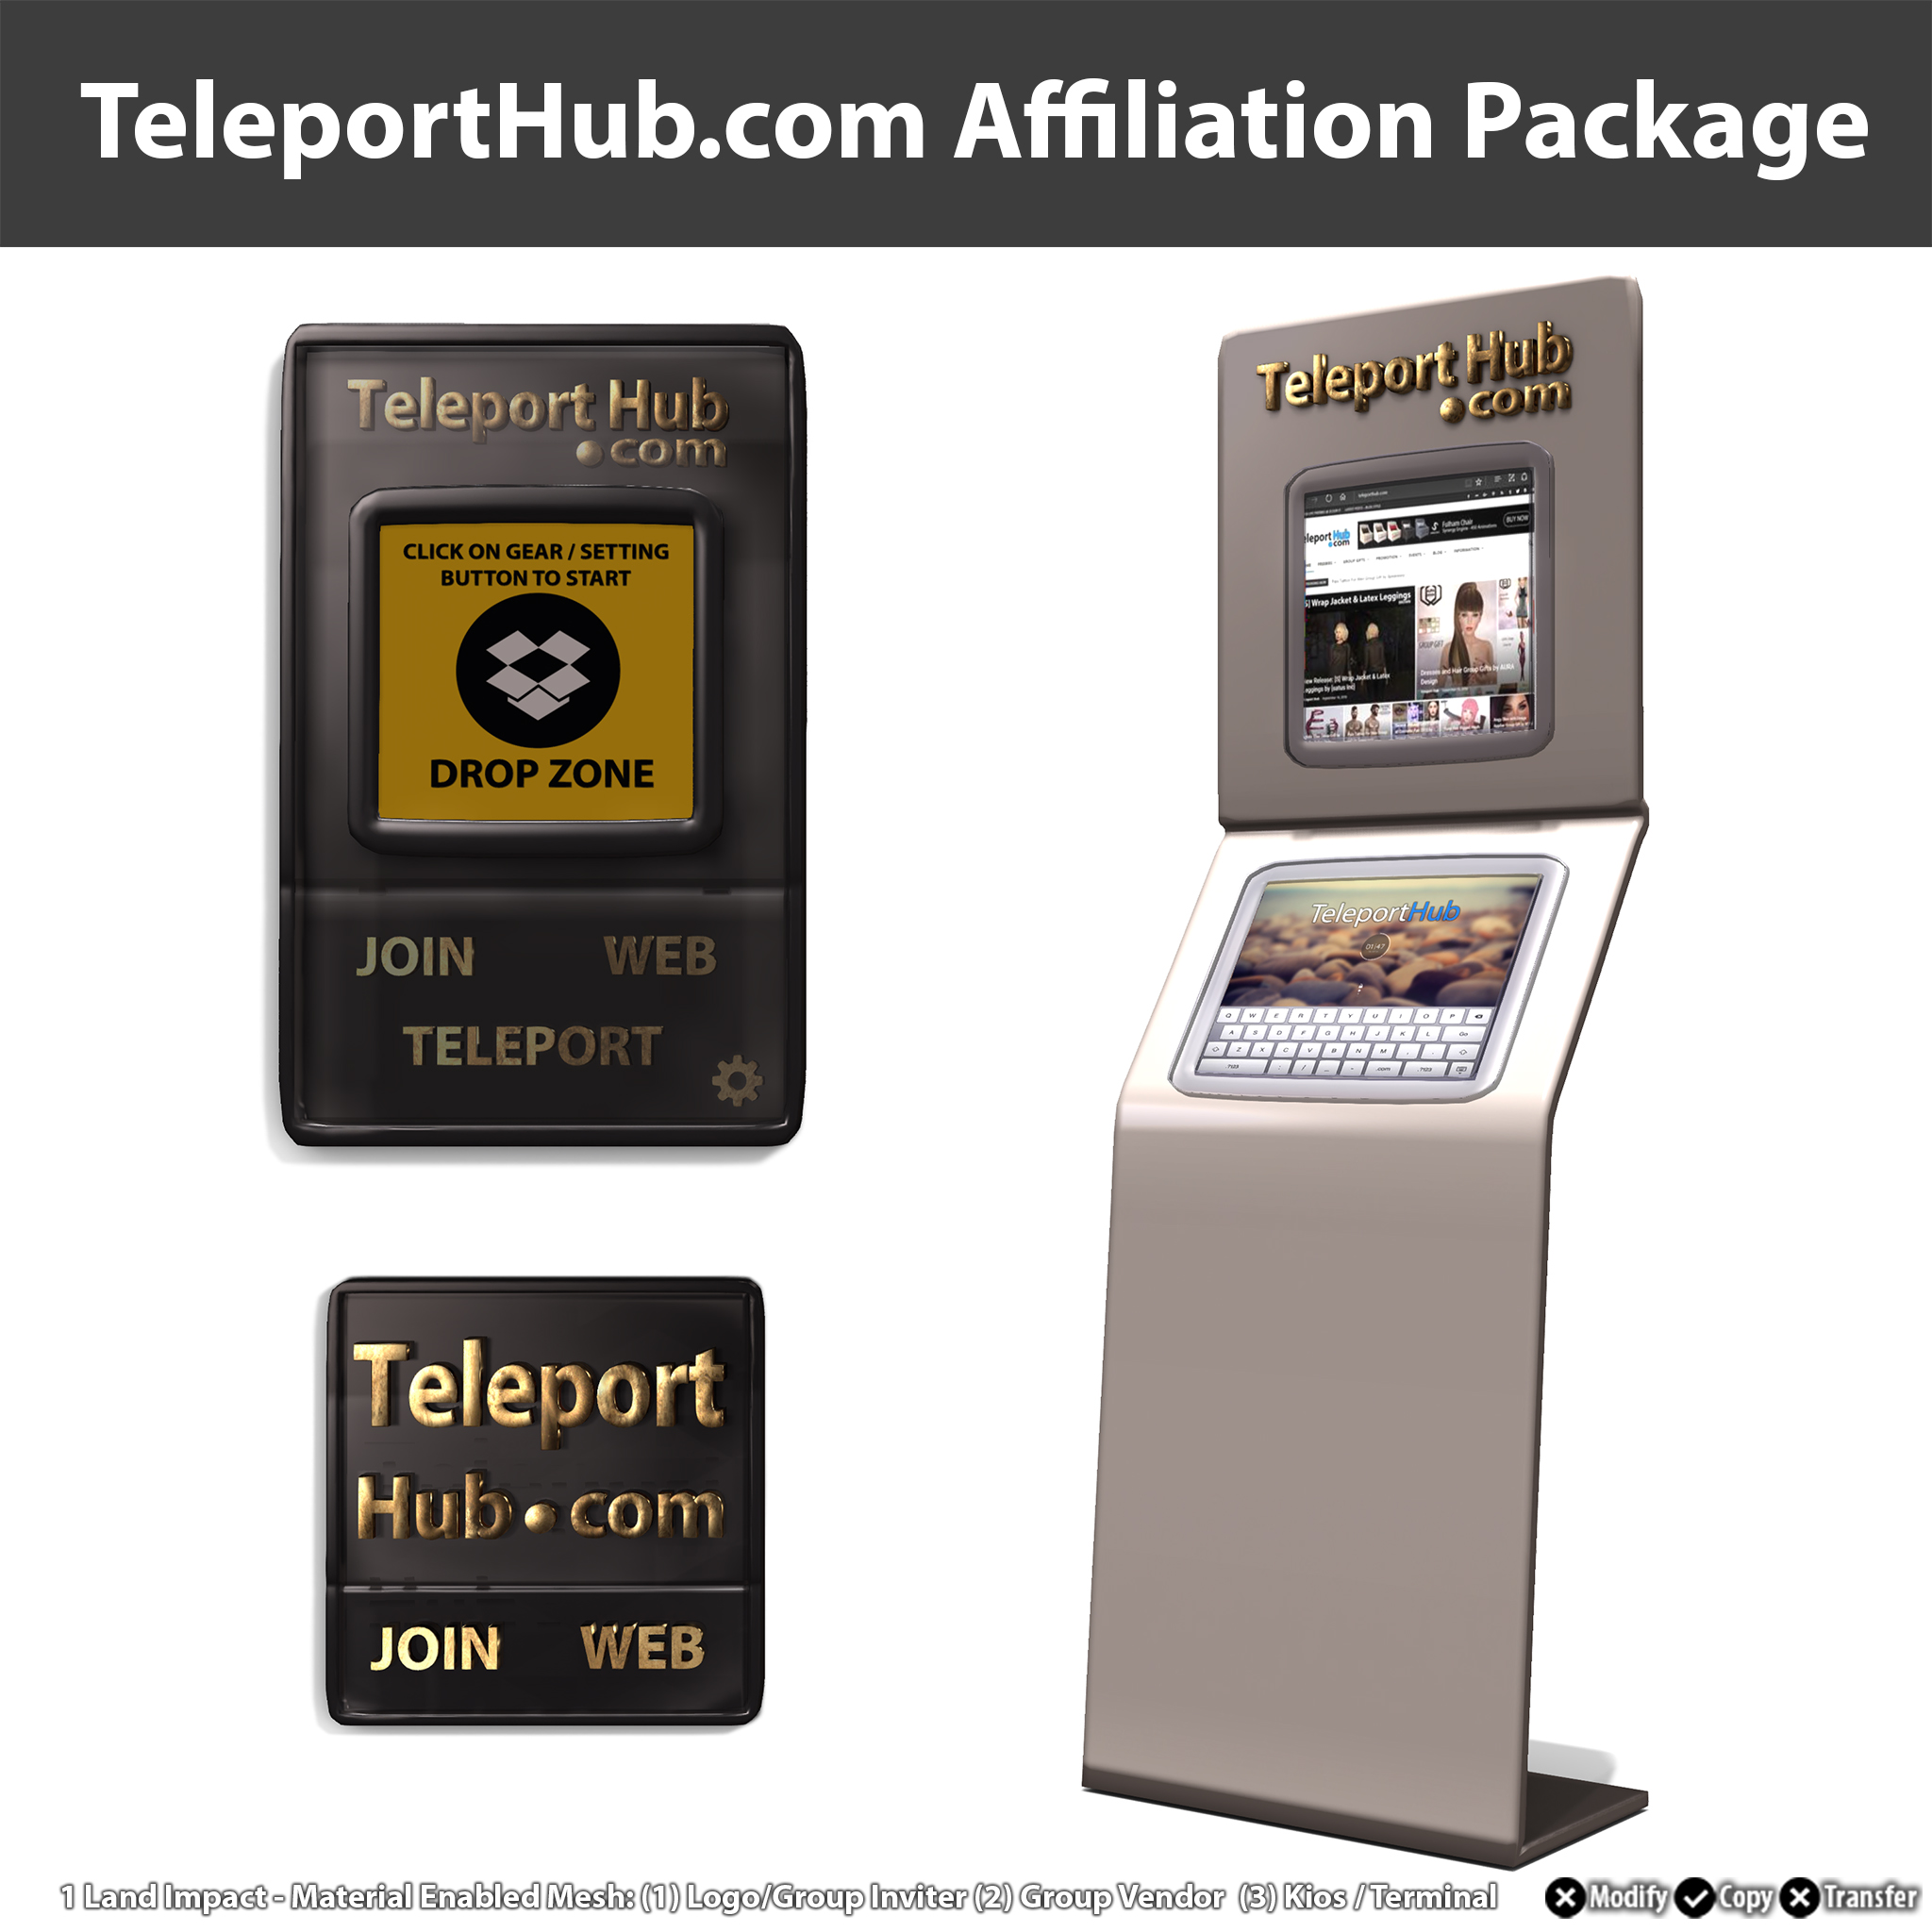 Teleport Hub Affiliation Package